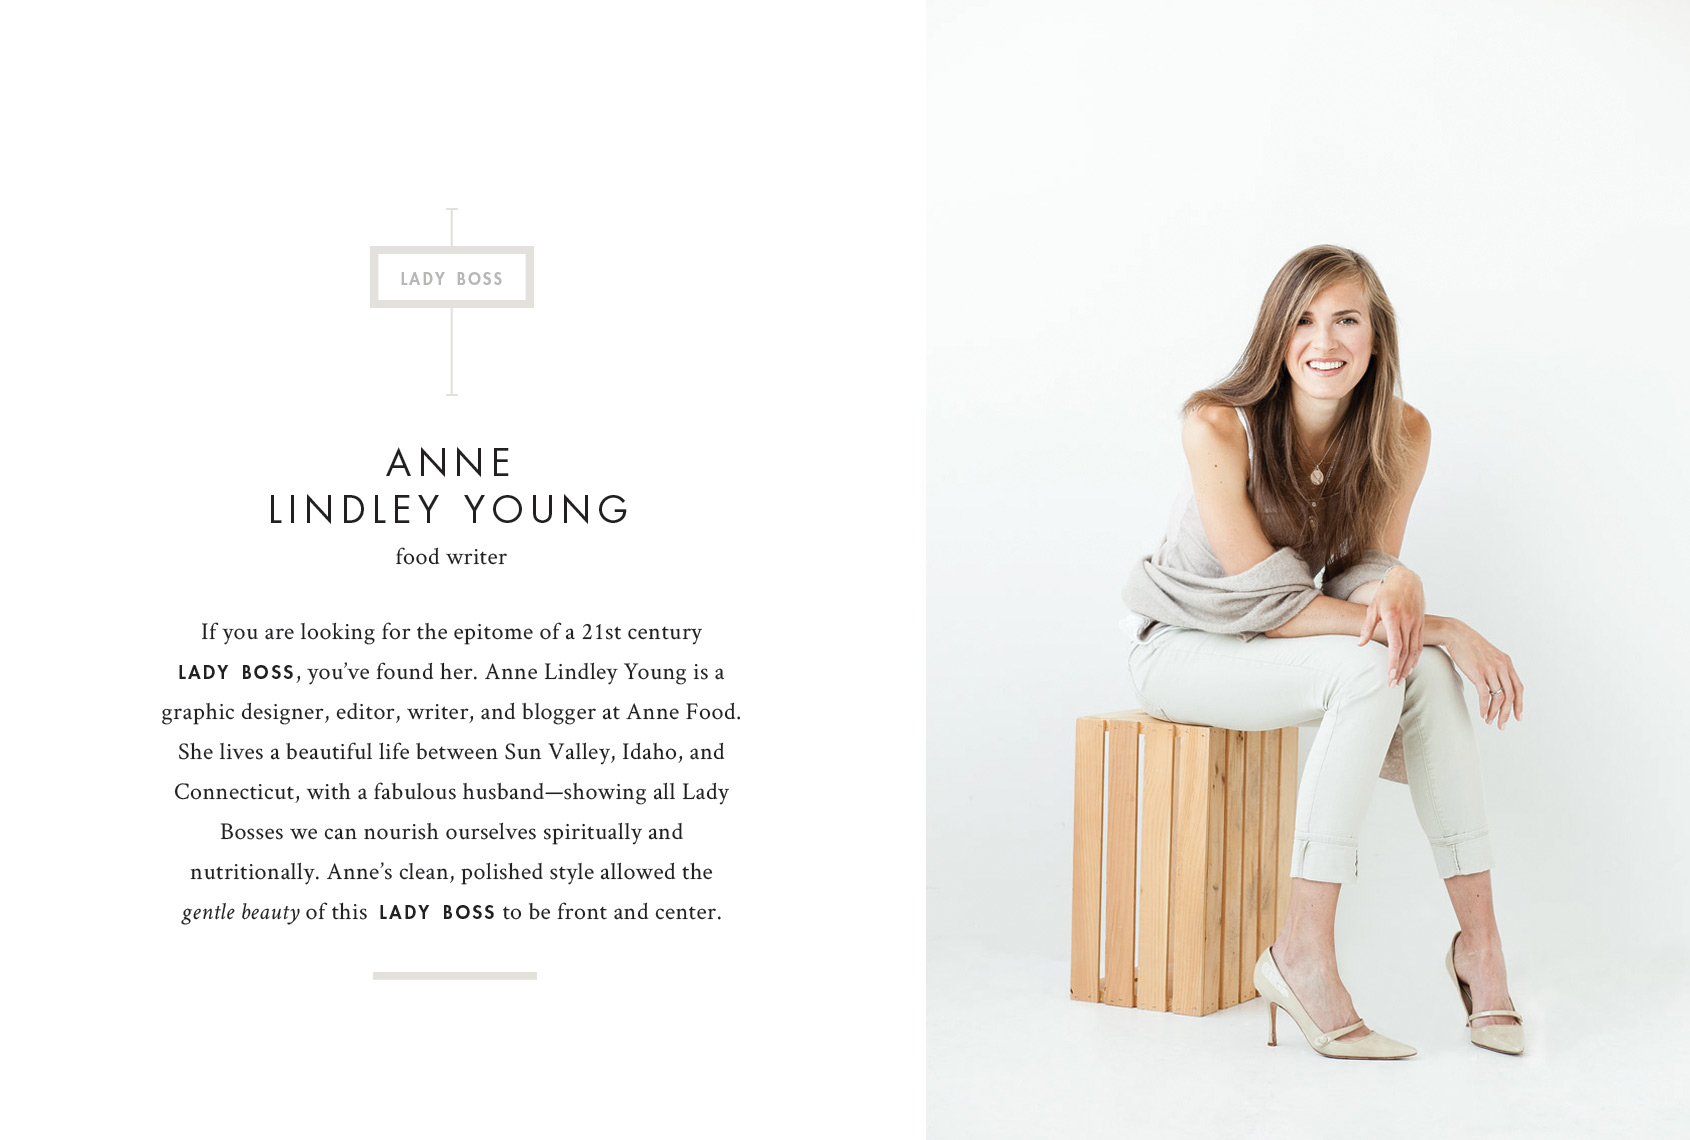 Print by Jennifer Graham Photography - Anne Lindley Young, writer for Anne Food